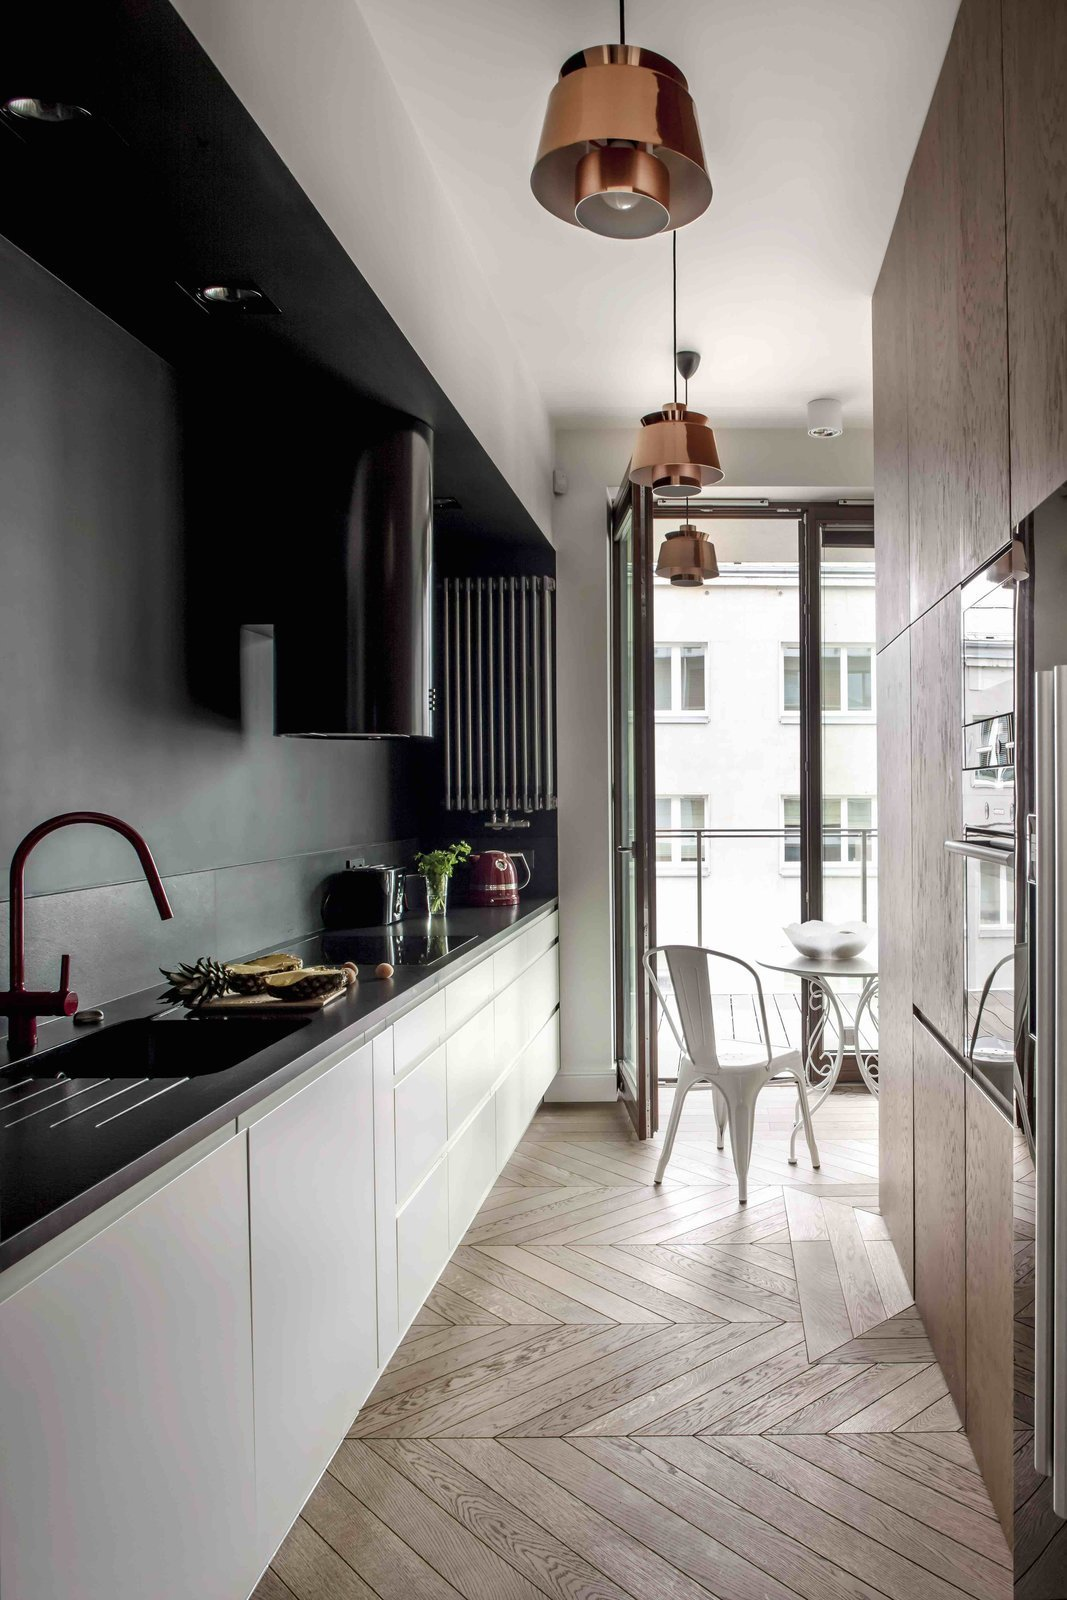 Kitchen, Wood Cabinet, White Cabinet, Light Hardwood Floor, Pendant Lighting, Recessed Lighting, Drop In Sink, Range Hood, and Range  Photo 2 of 12 in Filled With Color and Pattern, This Eclectic Apartment Brings a Little Madrid to Warsaw